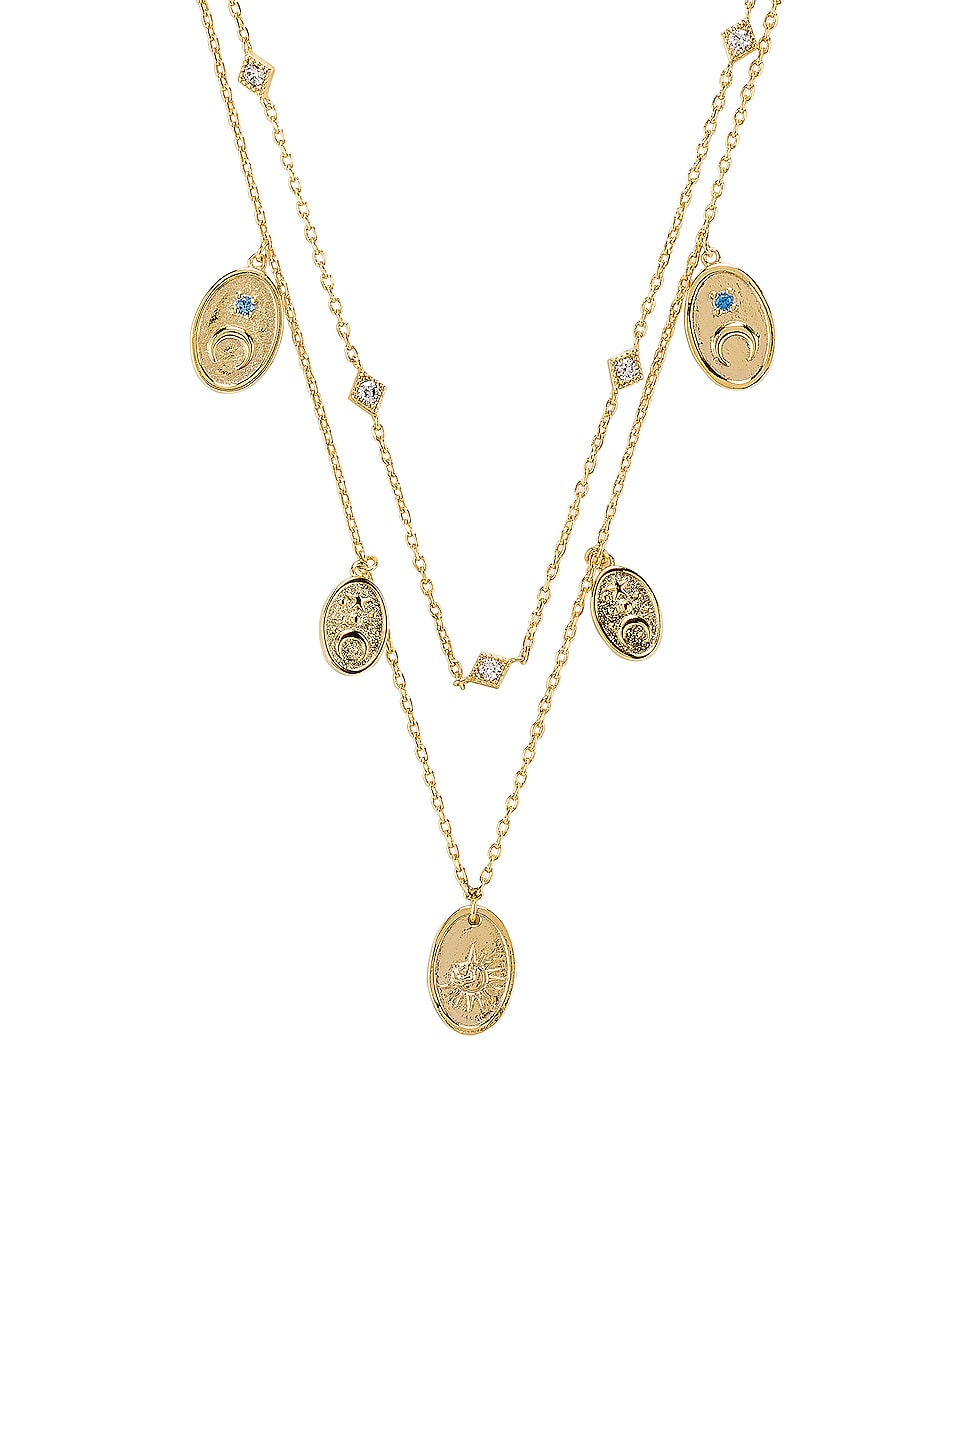 Wanderlust + Co Reverie Charms Necklace in Gold